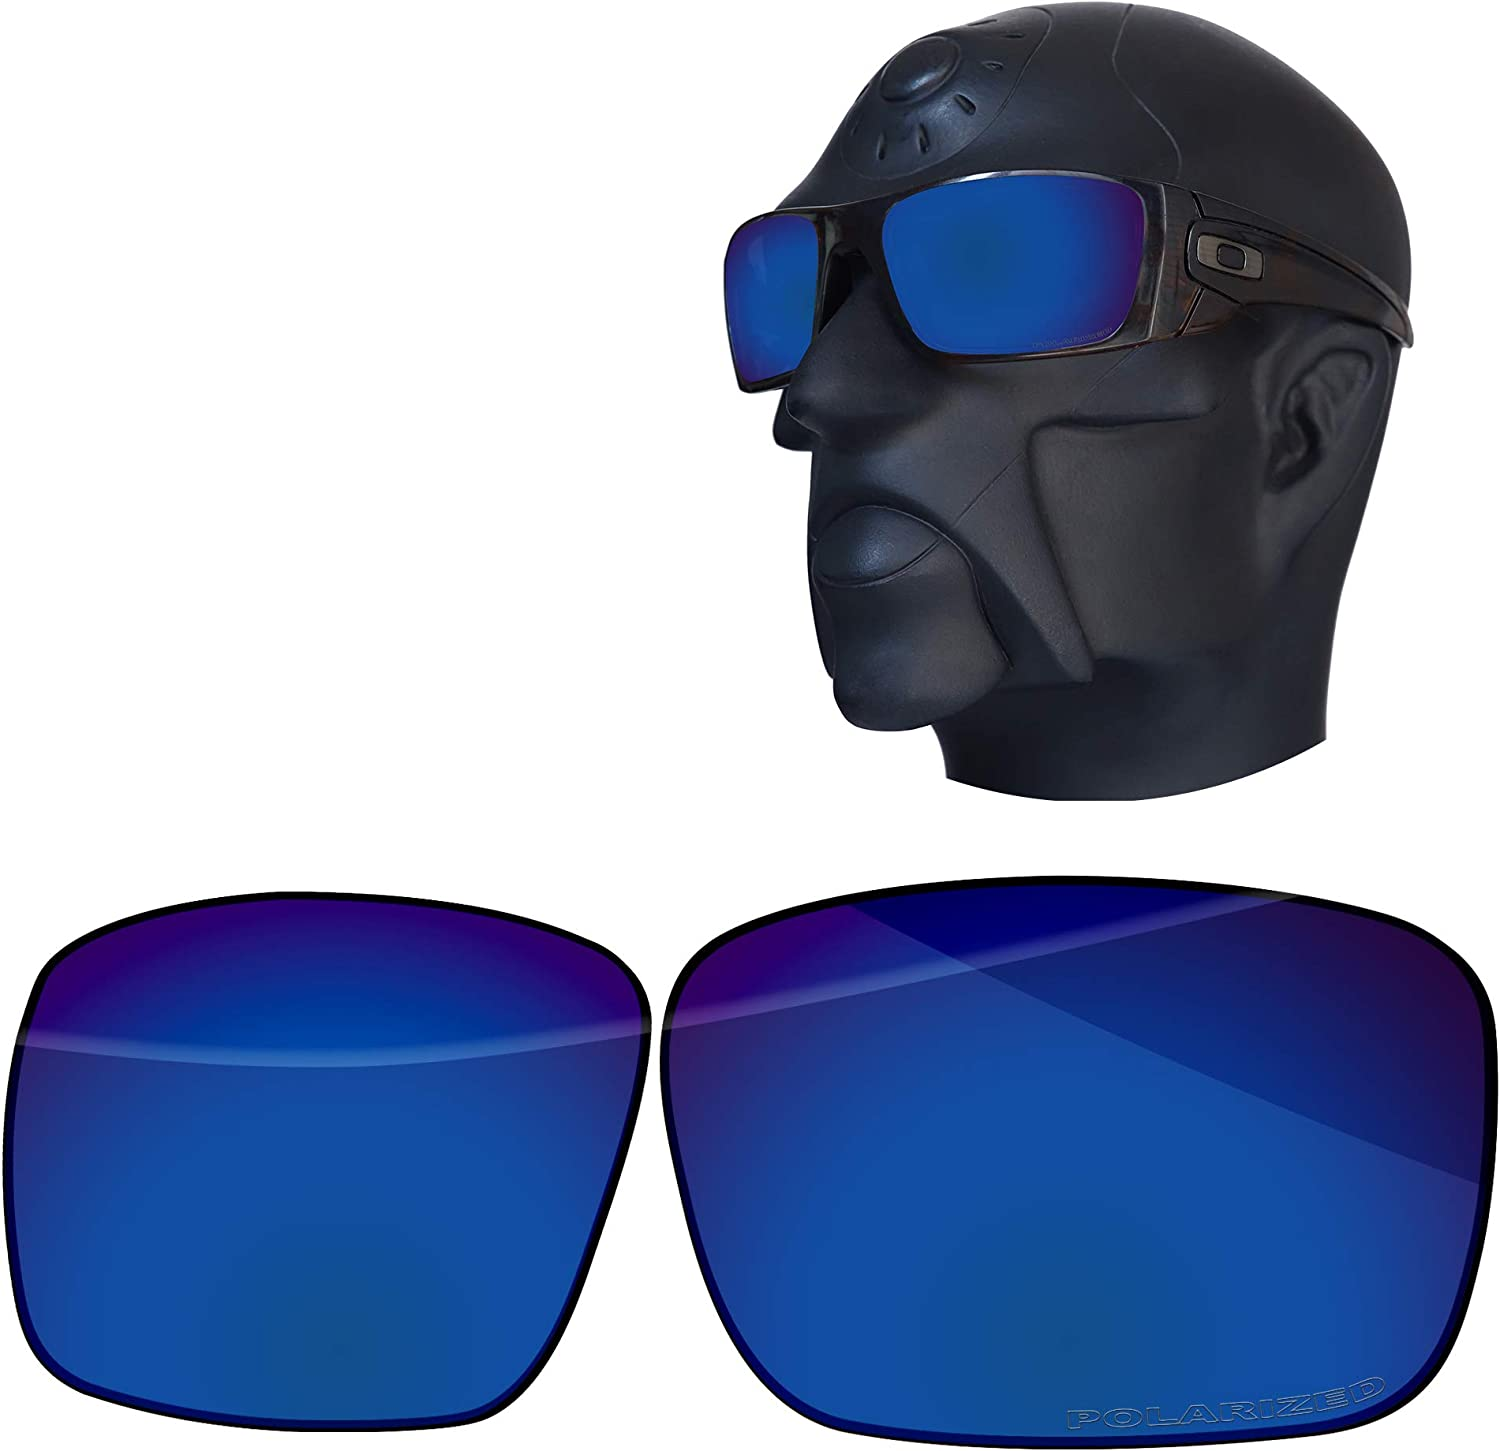 Limited time sale Ensky Replacement Lenses for Oakley Sunglasses Max 46% OFF Fuel OO9096 Cell